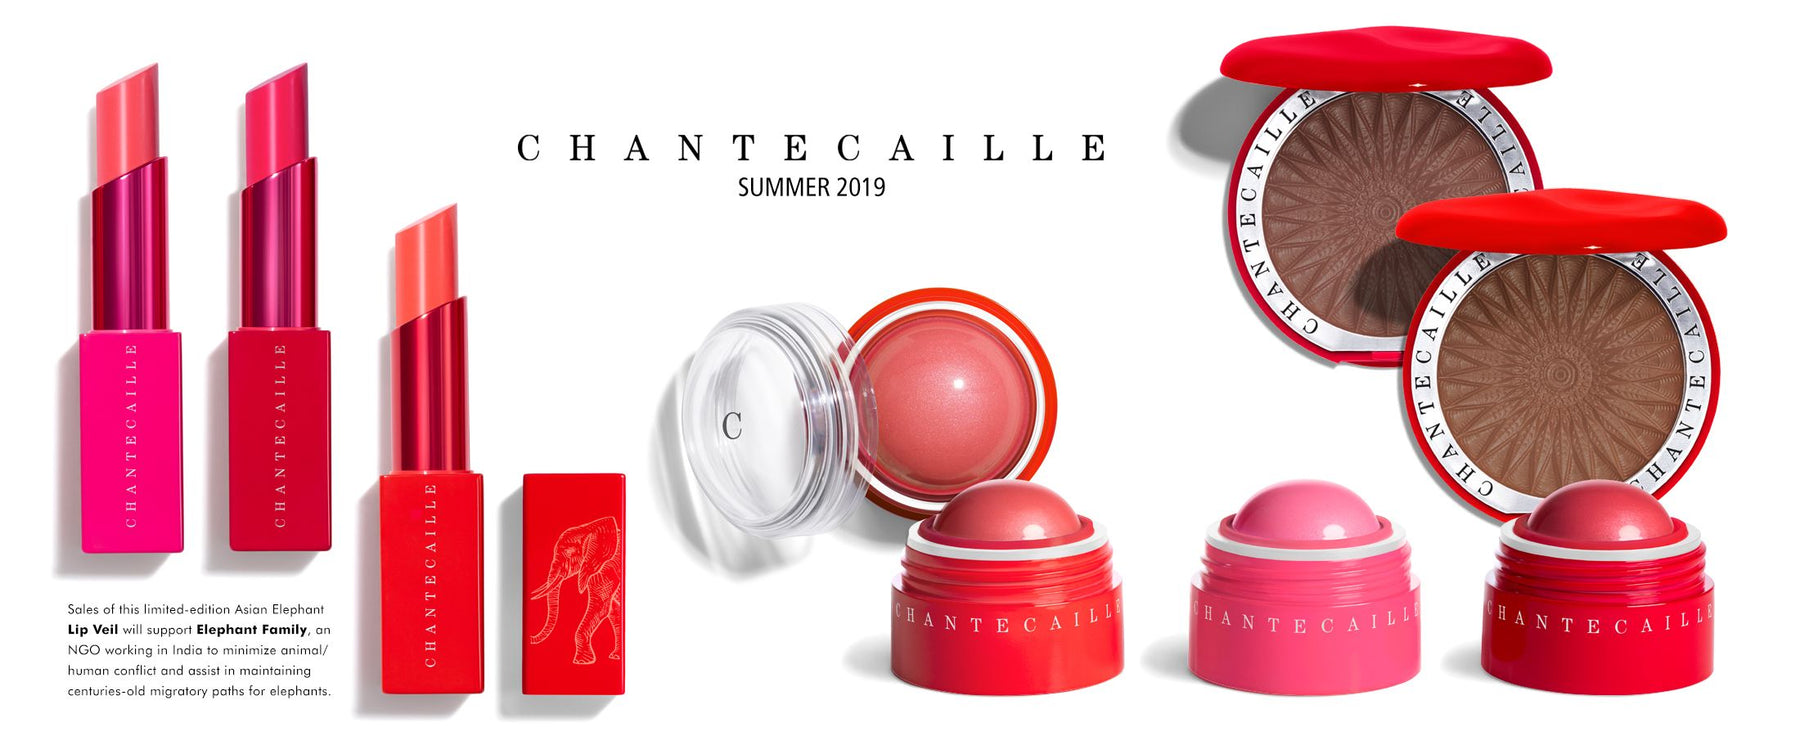 Chantecaille Summer 2019 makeup collection. Sales of the limited-edition Asian Elephant Lip Veil will support Elephant Family, an NGO working in India to minimize animal/human conflict and assist in maintaining centuries-old migratory paths for elephants.